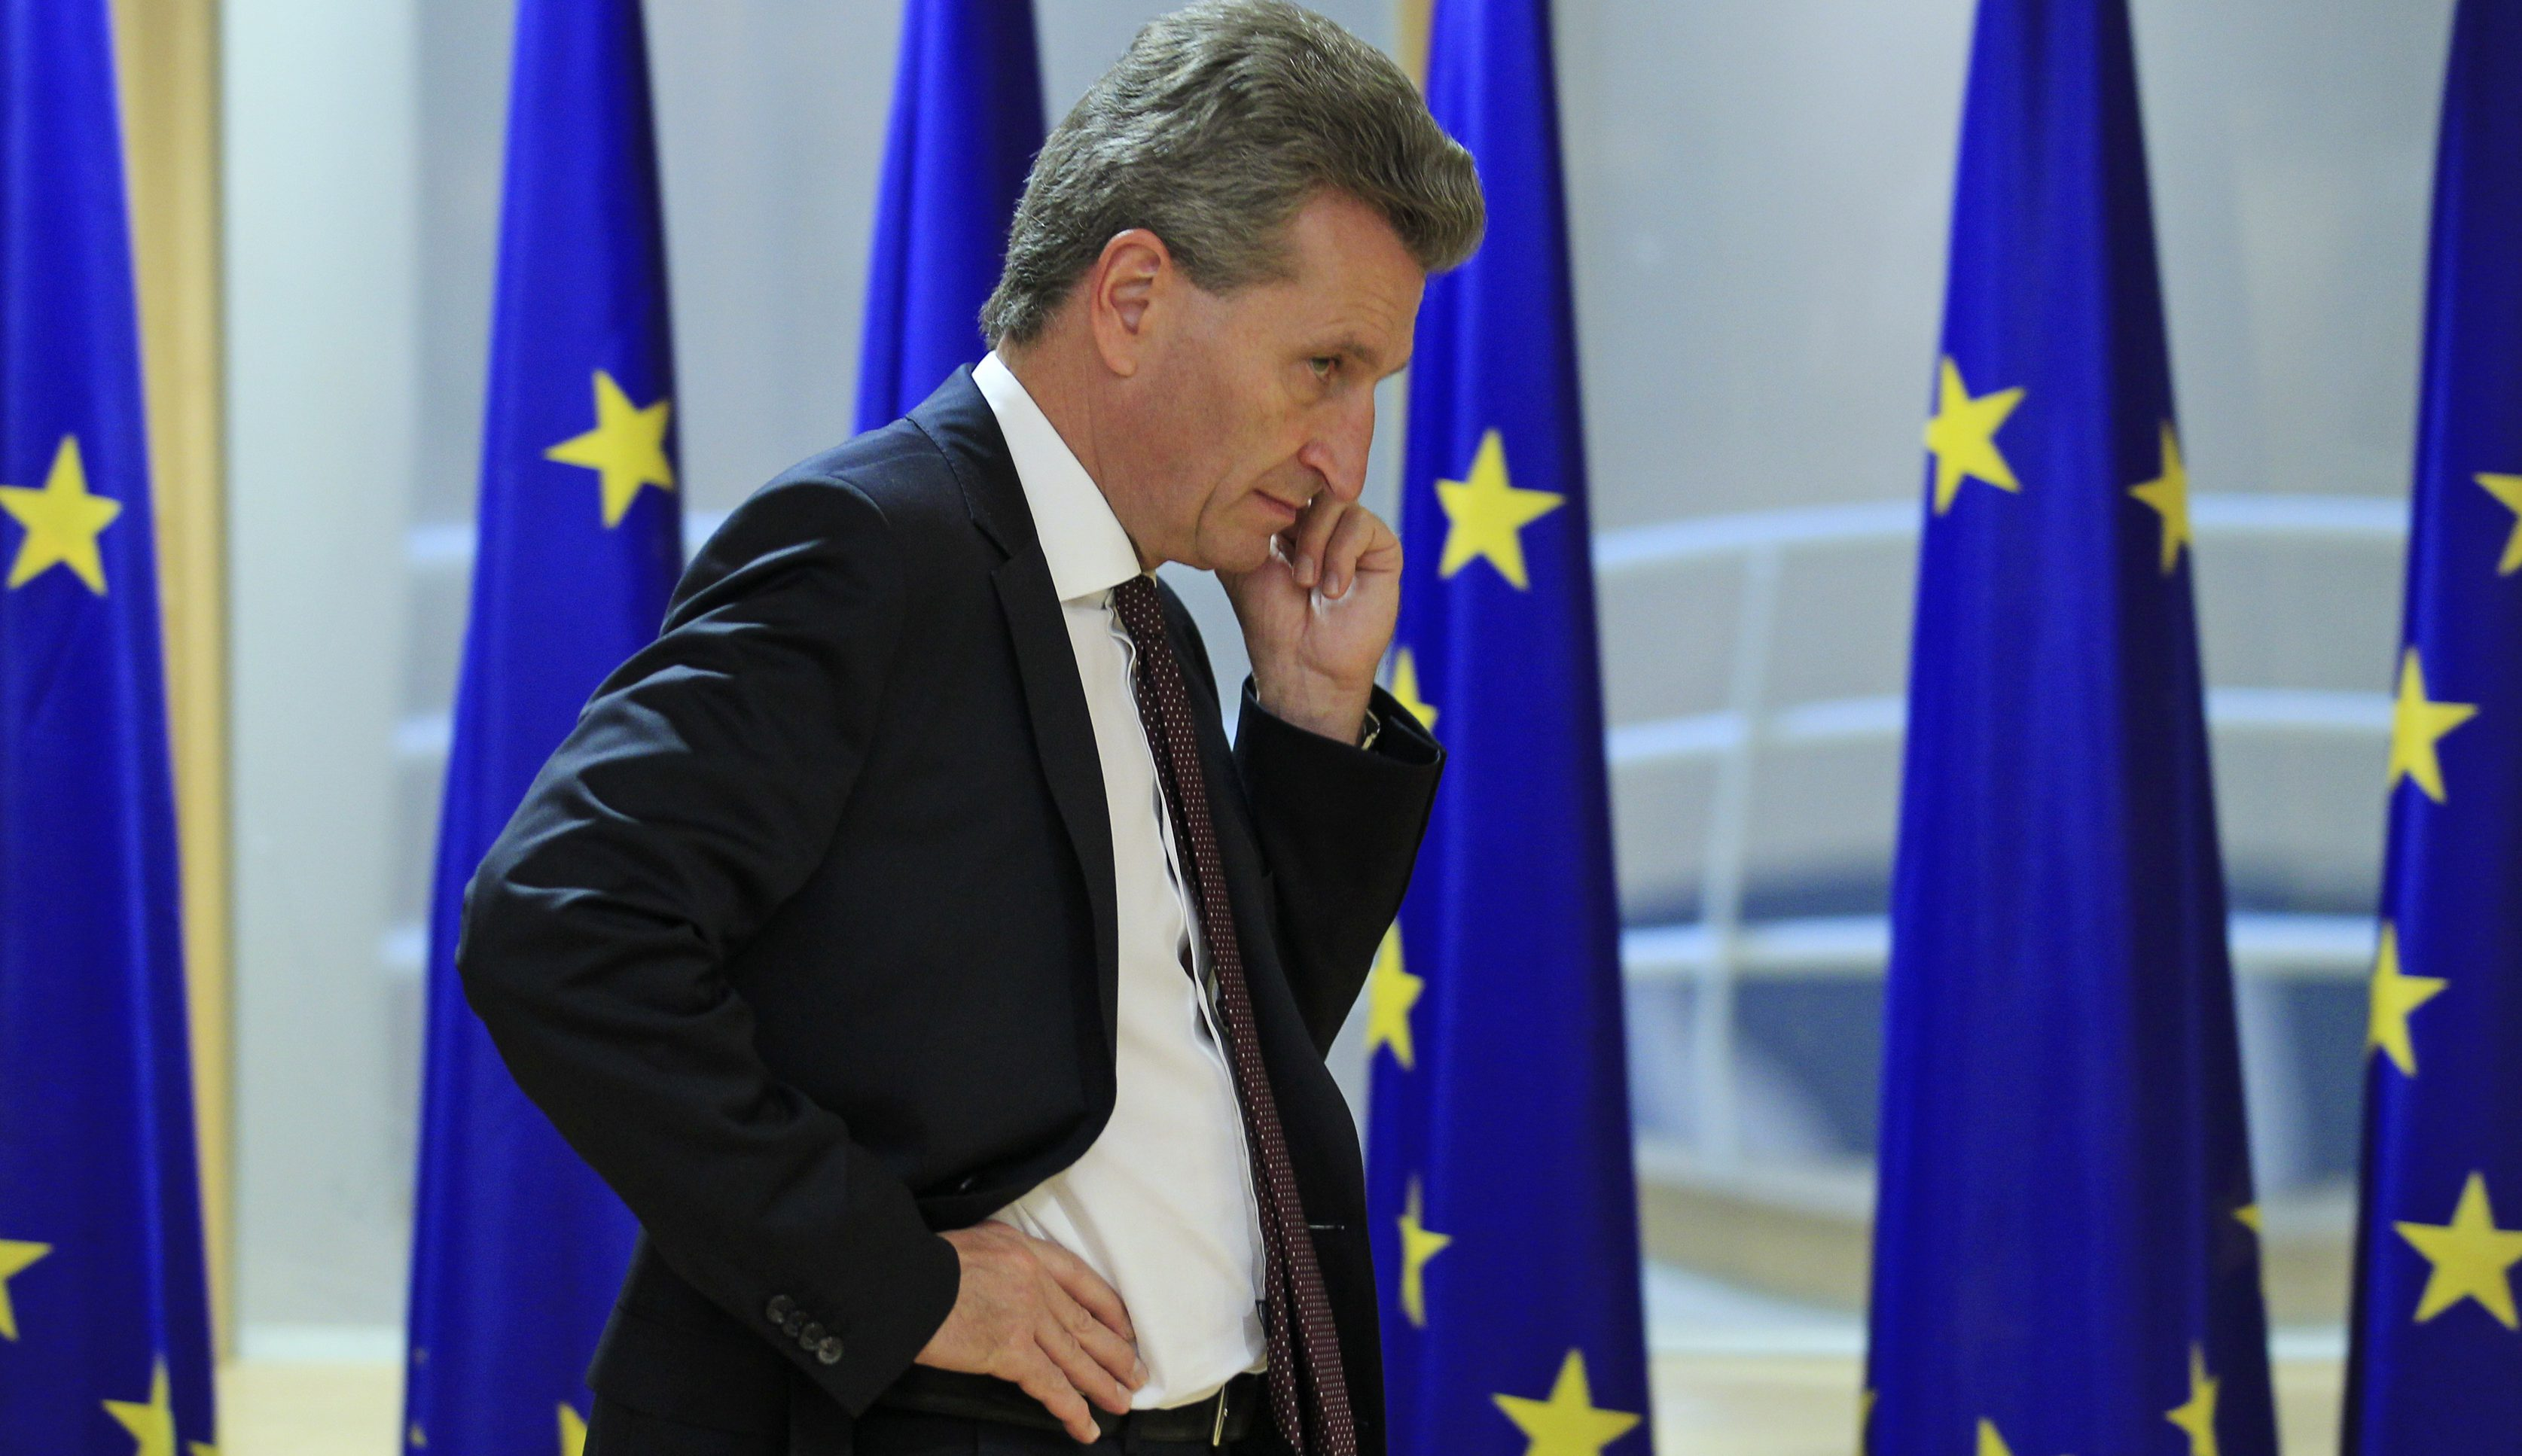 European Energy Commissioner Gunther Oettinger talks on his cell phone ahead of a meeting of the European Commission and an Irish ministers delegation in Brussels October 3, 2012. Europe's nuclear reactors need investment of 10-25 billion euros, a draft European Commission report said, following a safety review designed to ensure a disaster like Japan's Fukushima cannot happen.